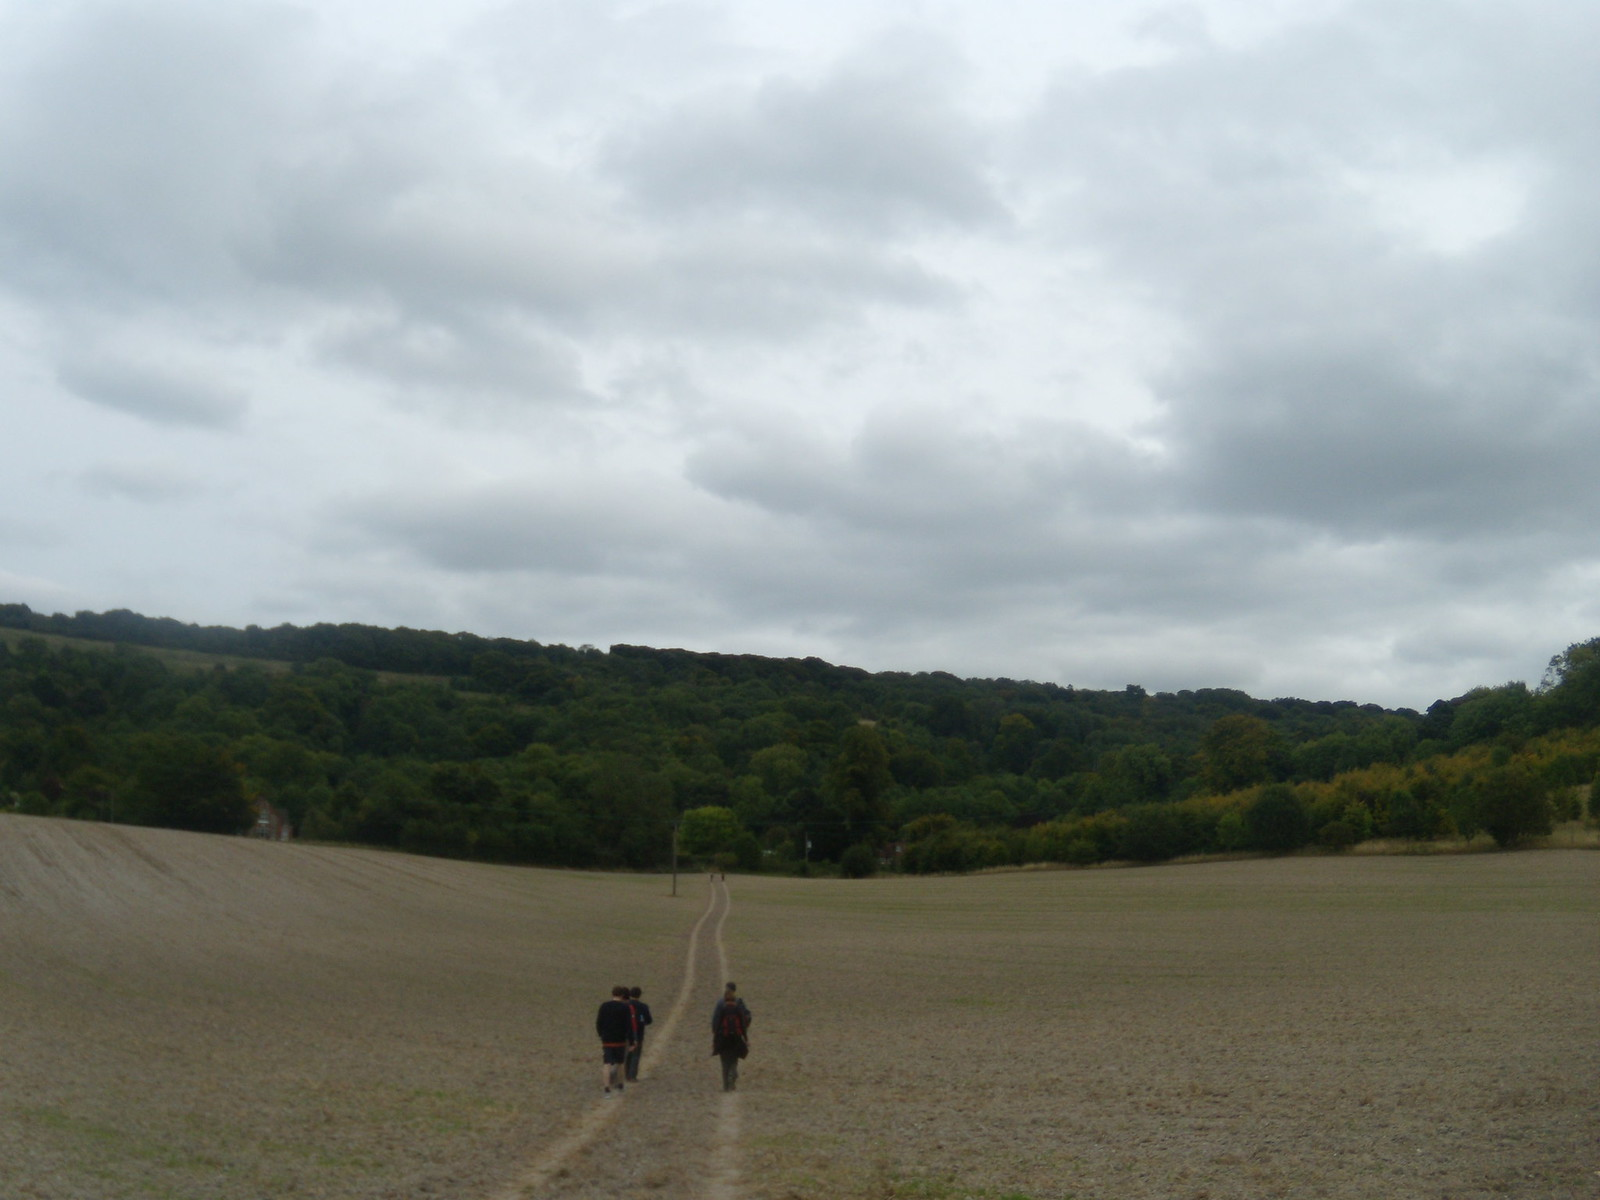 On to Coombe Hill Wendover Circular